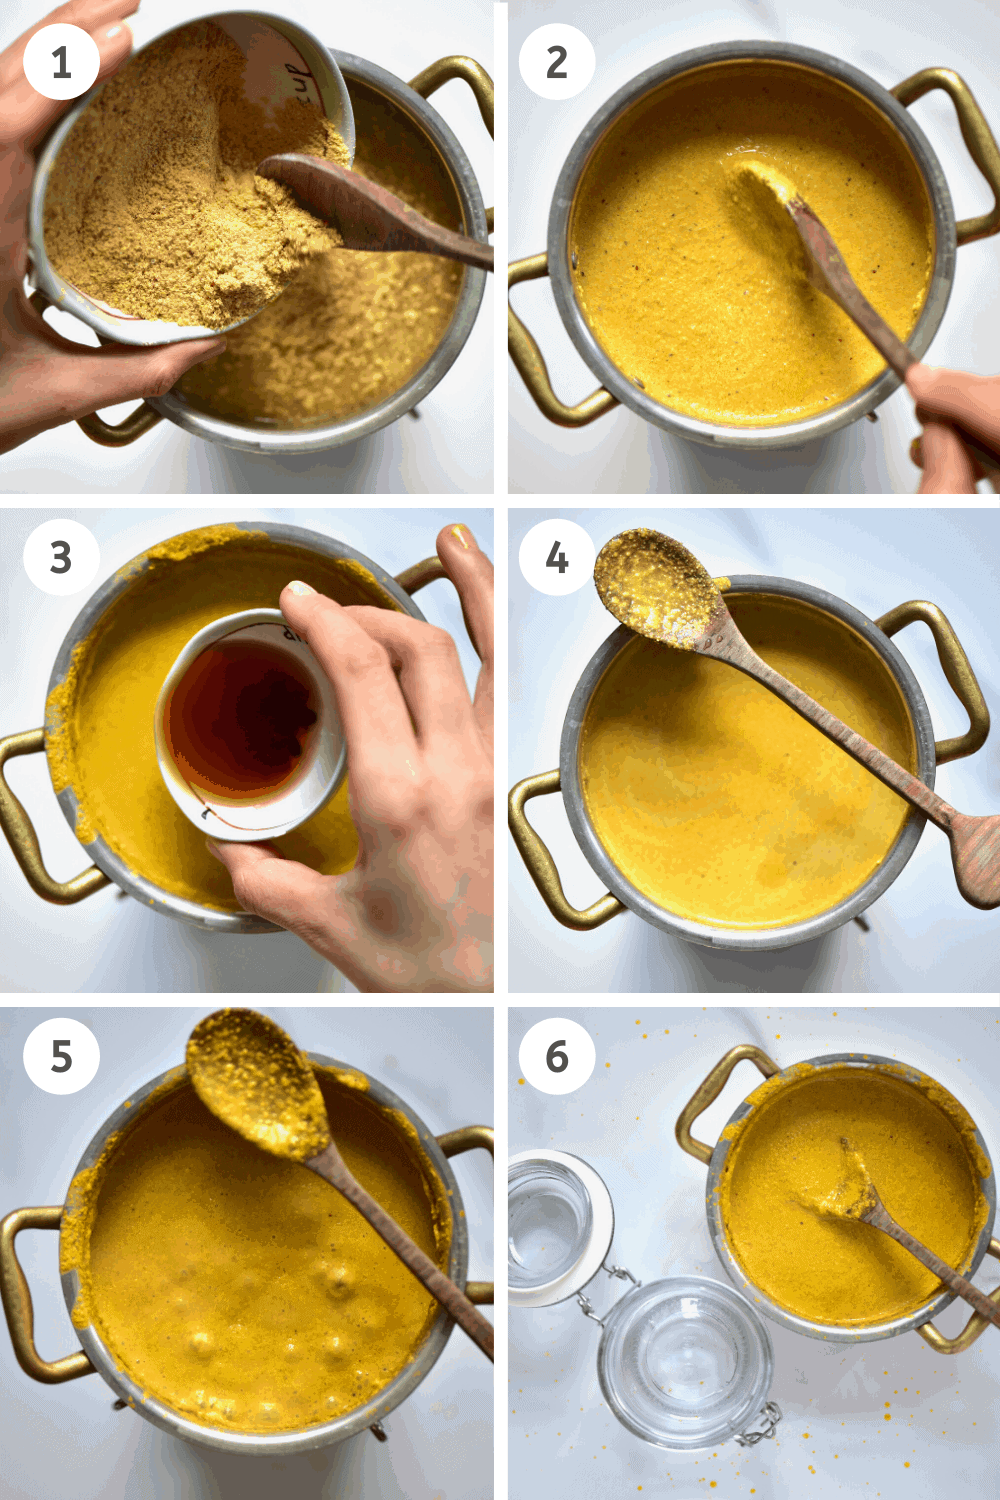 step-by-step how to make mustard